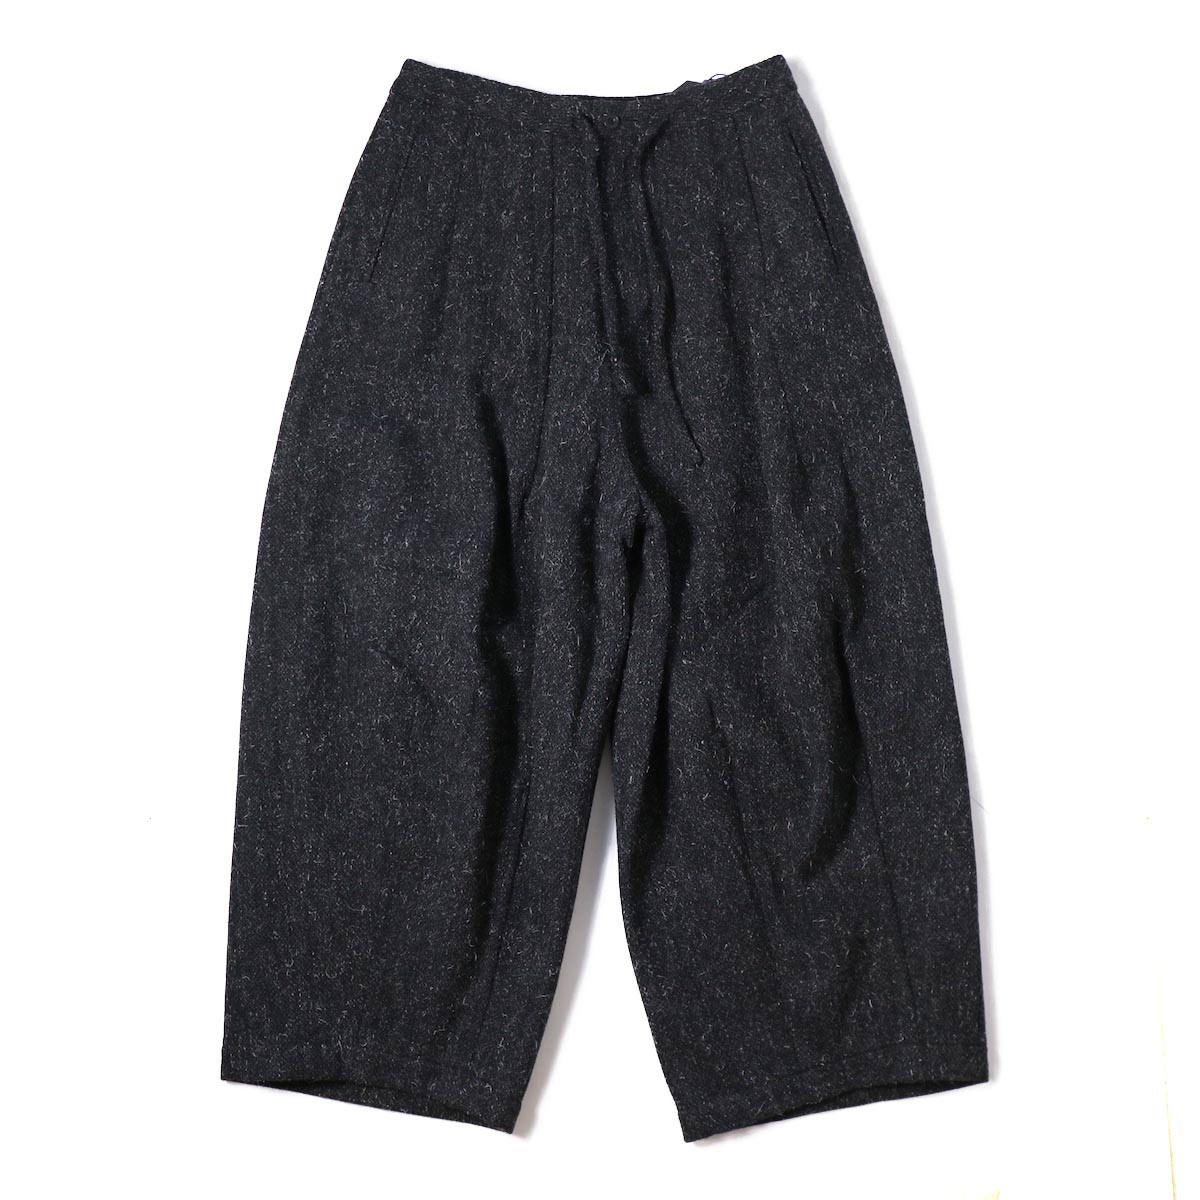 NEEDLES (WOMENS) / Darts Military Pant W/Pe/A/N Tweed -CHARCOAL